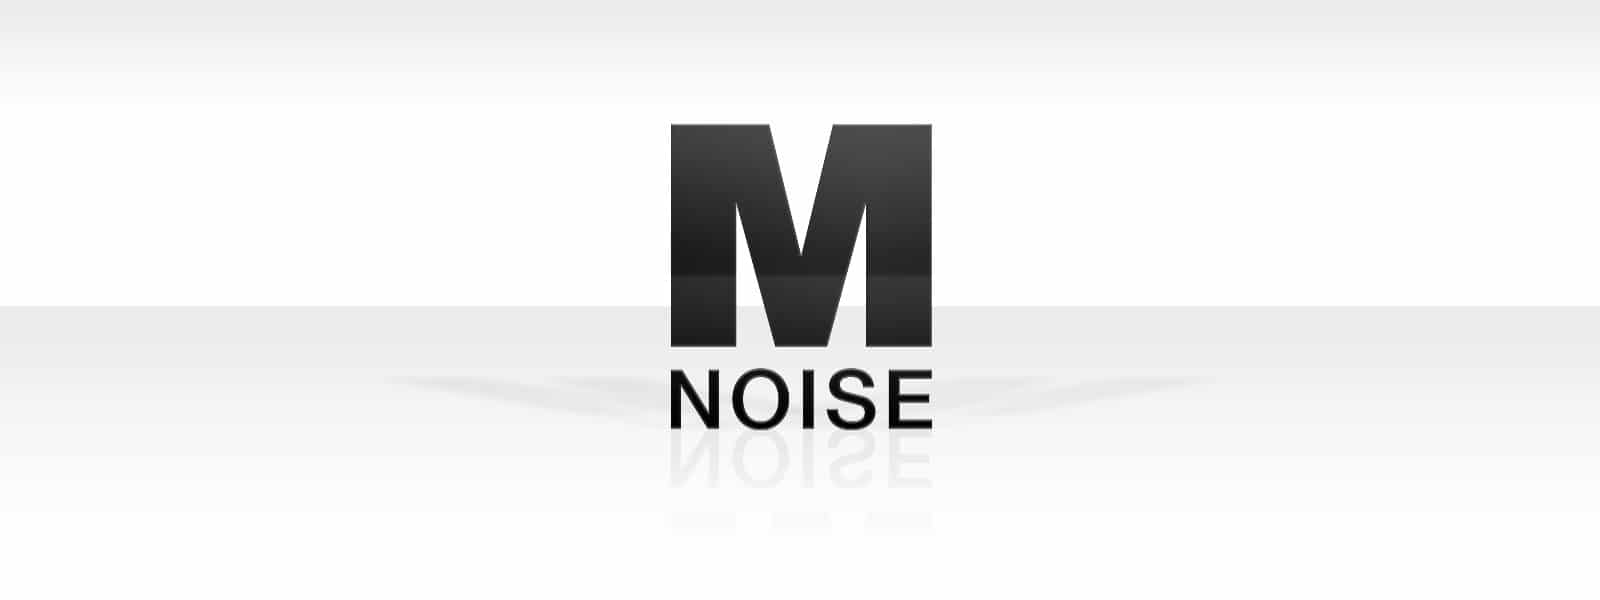 M-Noise: A New Test Signal